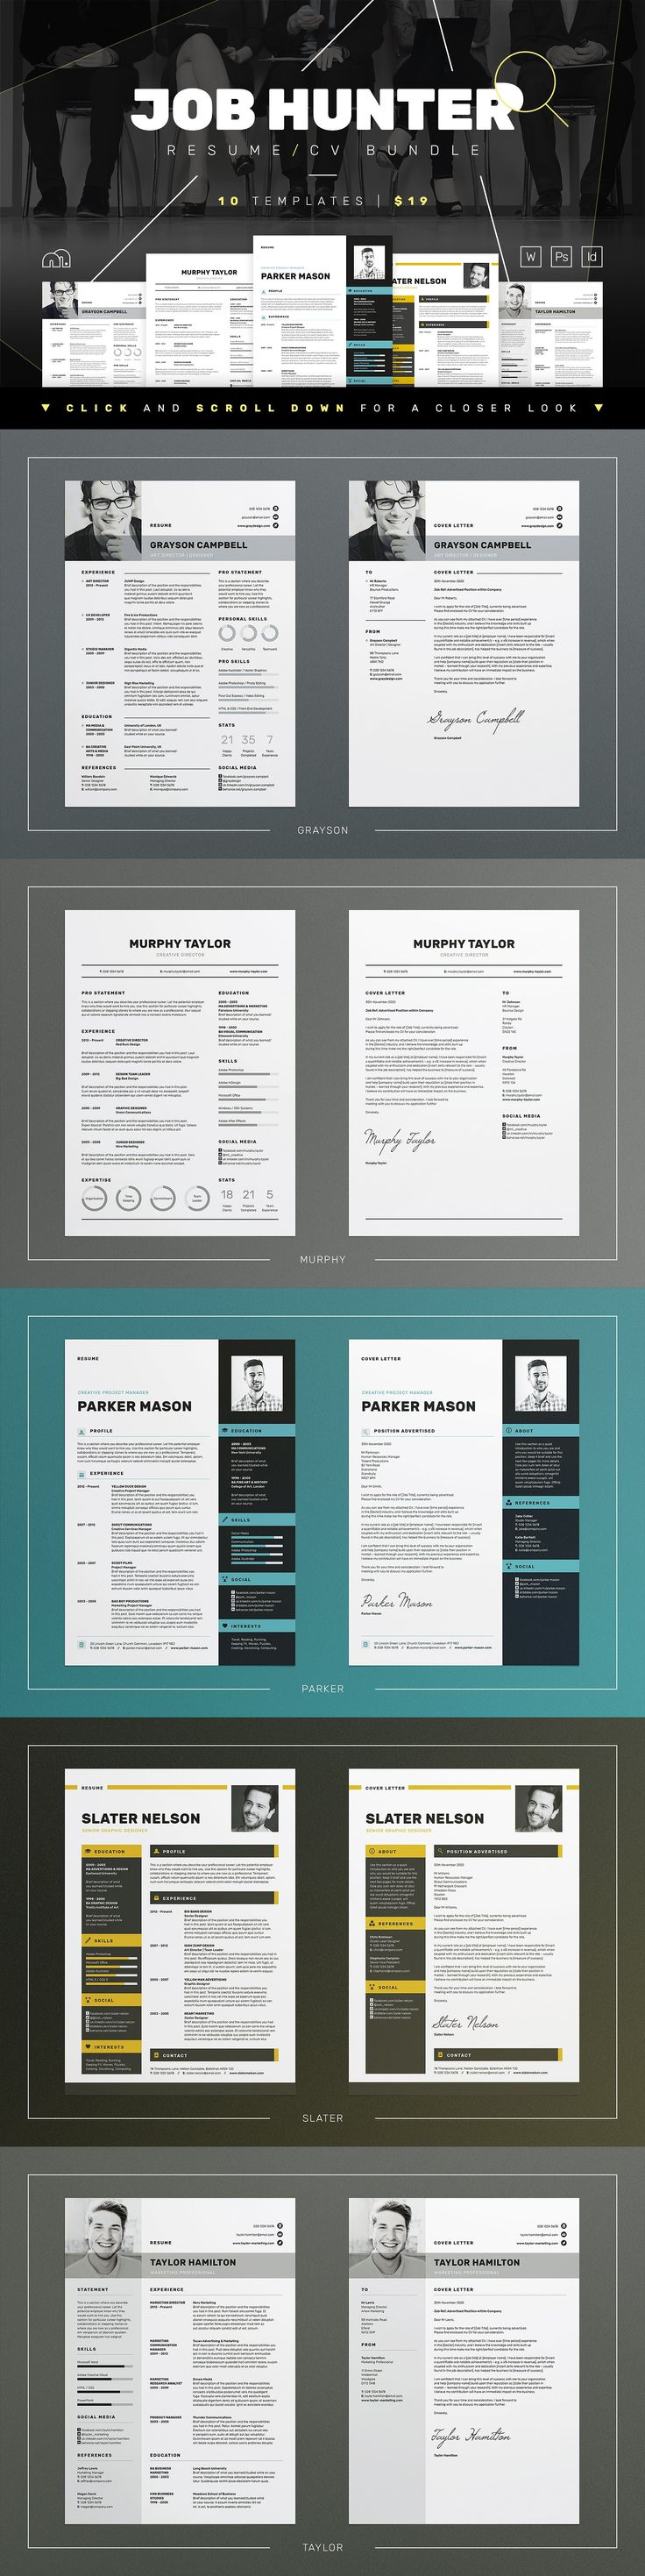 JOB HUNTER - Resume/CV Bundle by bilmaw creative on @creativemarket #resume #cv #template